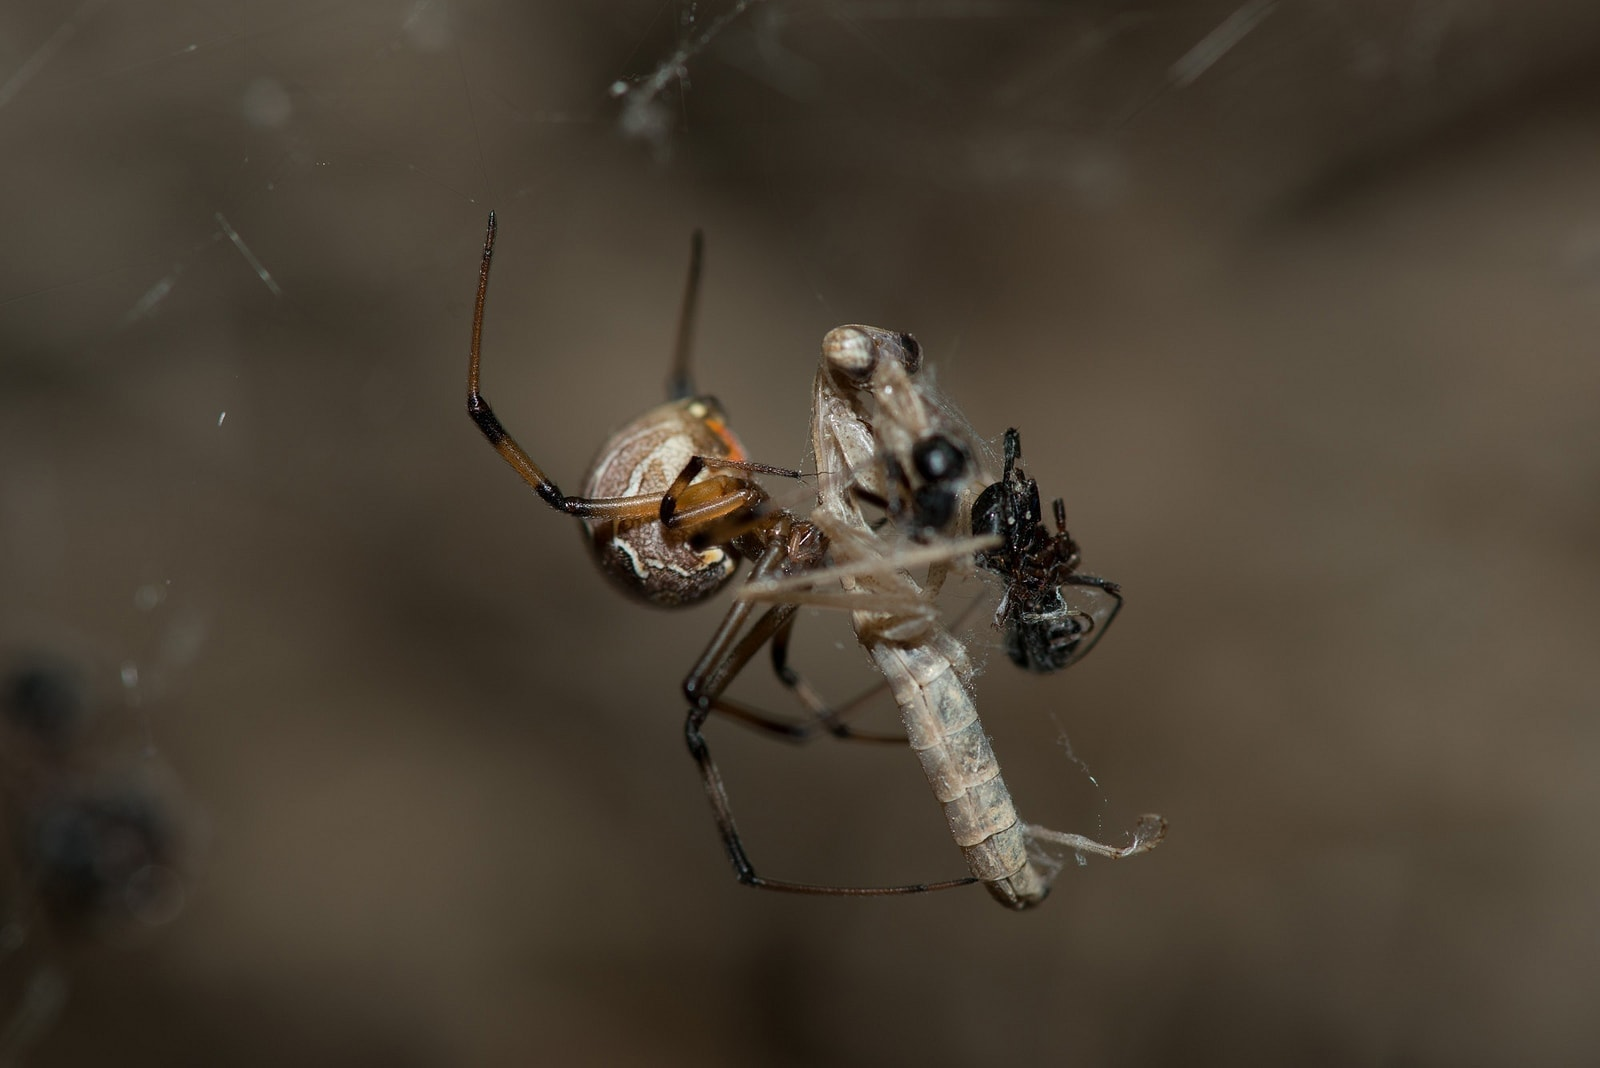 Picture of Latrodectus geometricus (Brown Widow Spider) - Female - Lateral,Prey